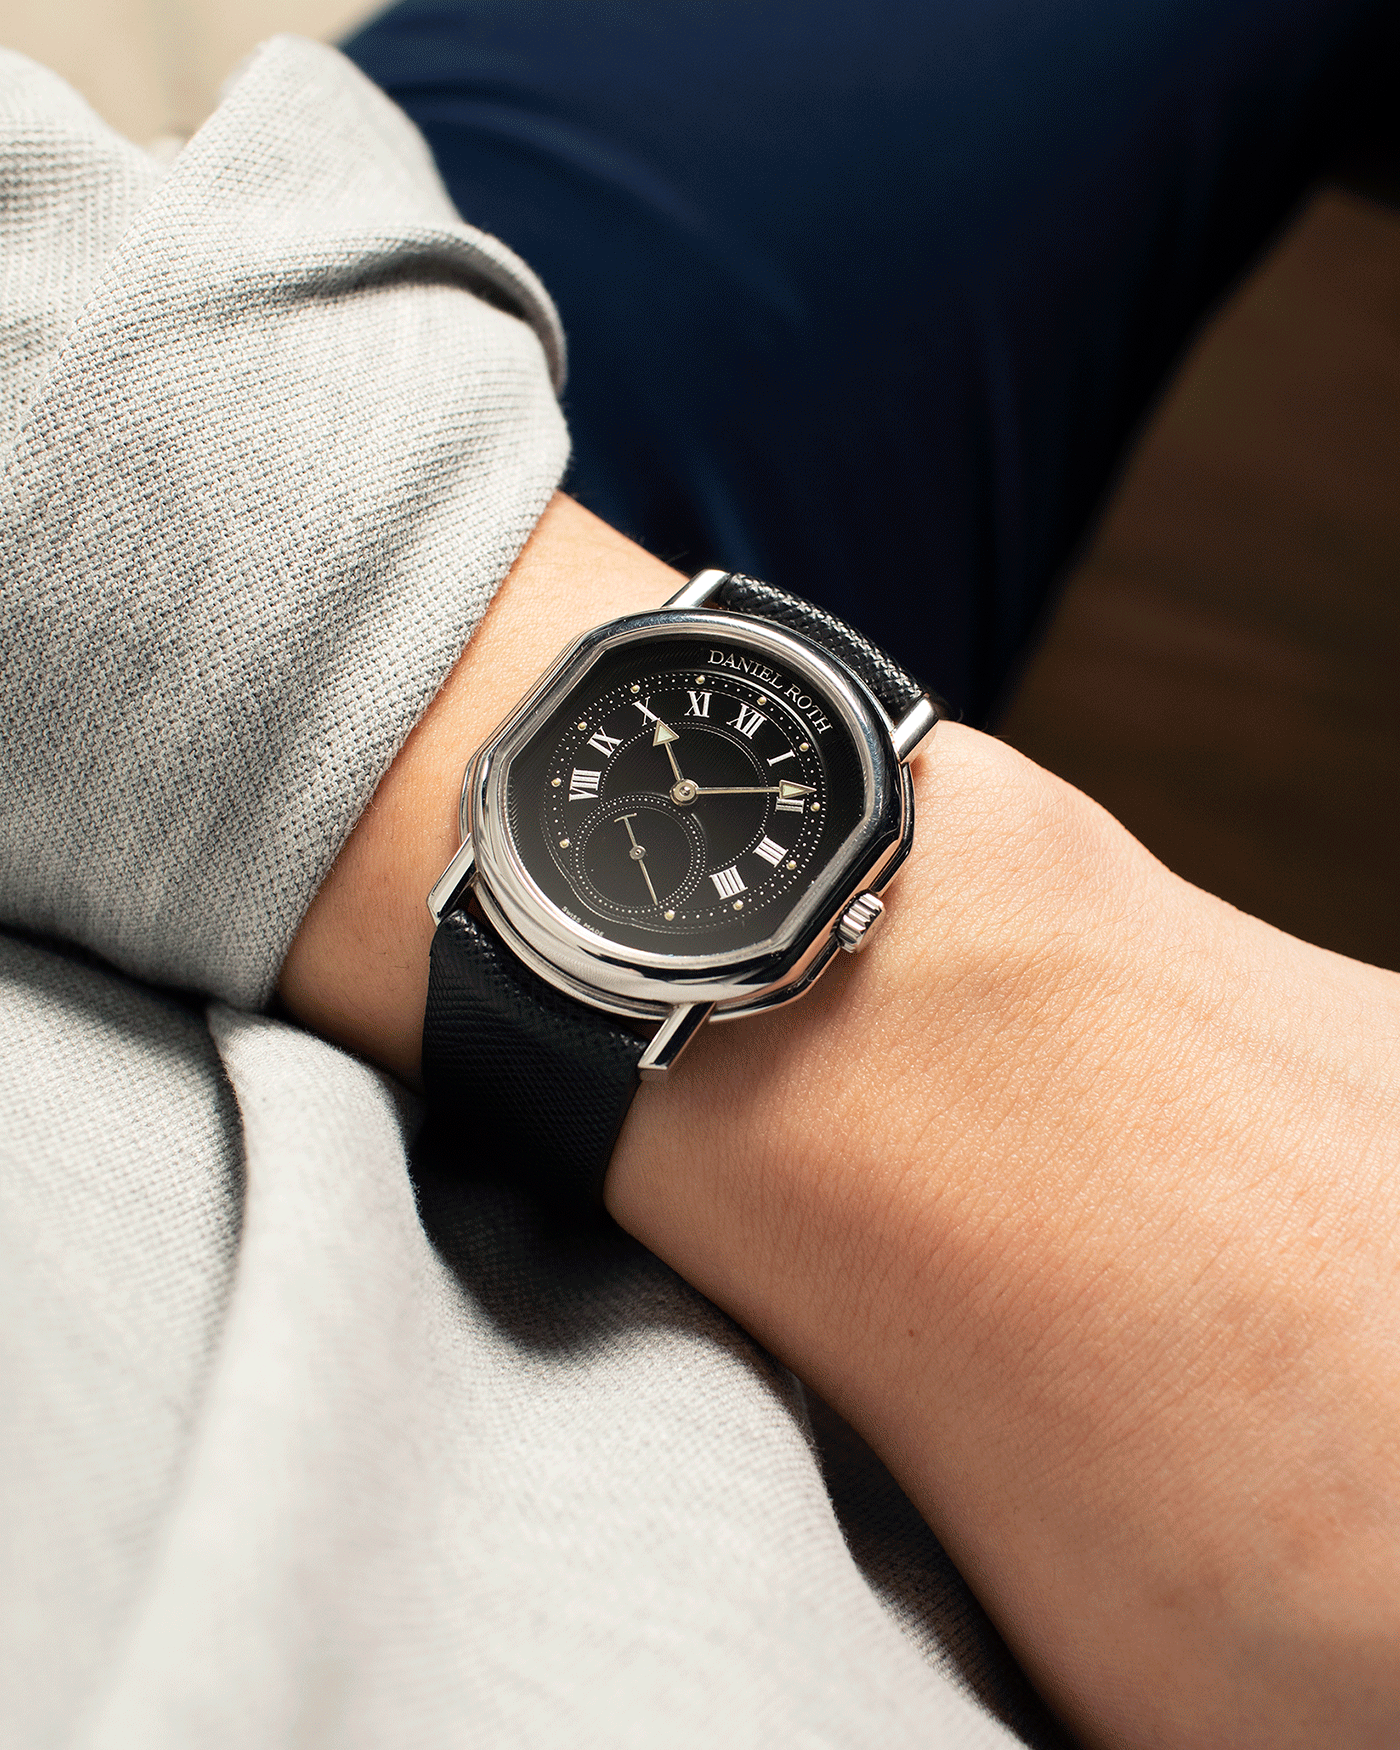 Brand: Daniel Roth Year: 2002 Model: Small Seconds Material: Stainless Steel Case Diameter: 35mmX38mm Bracelet/Strap: JPM X S.SONG Black Saffiano and Stainless Steel Daniel Roth Tang Buckle